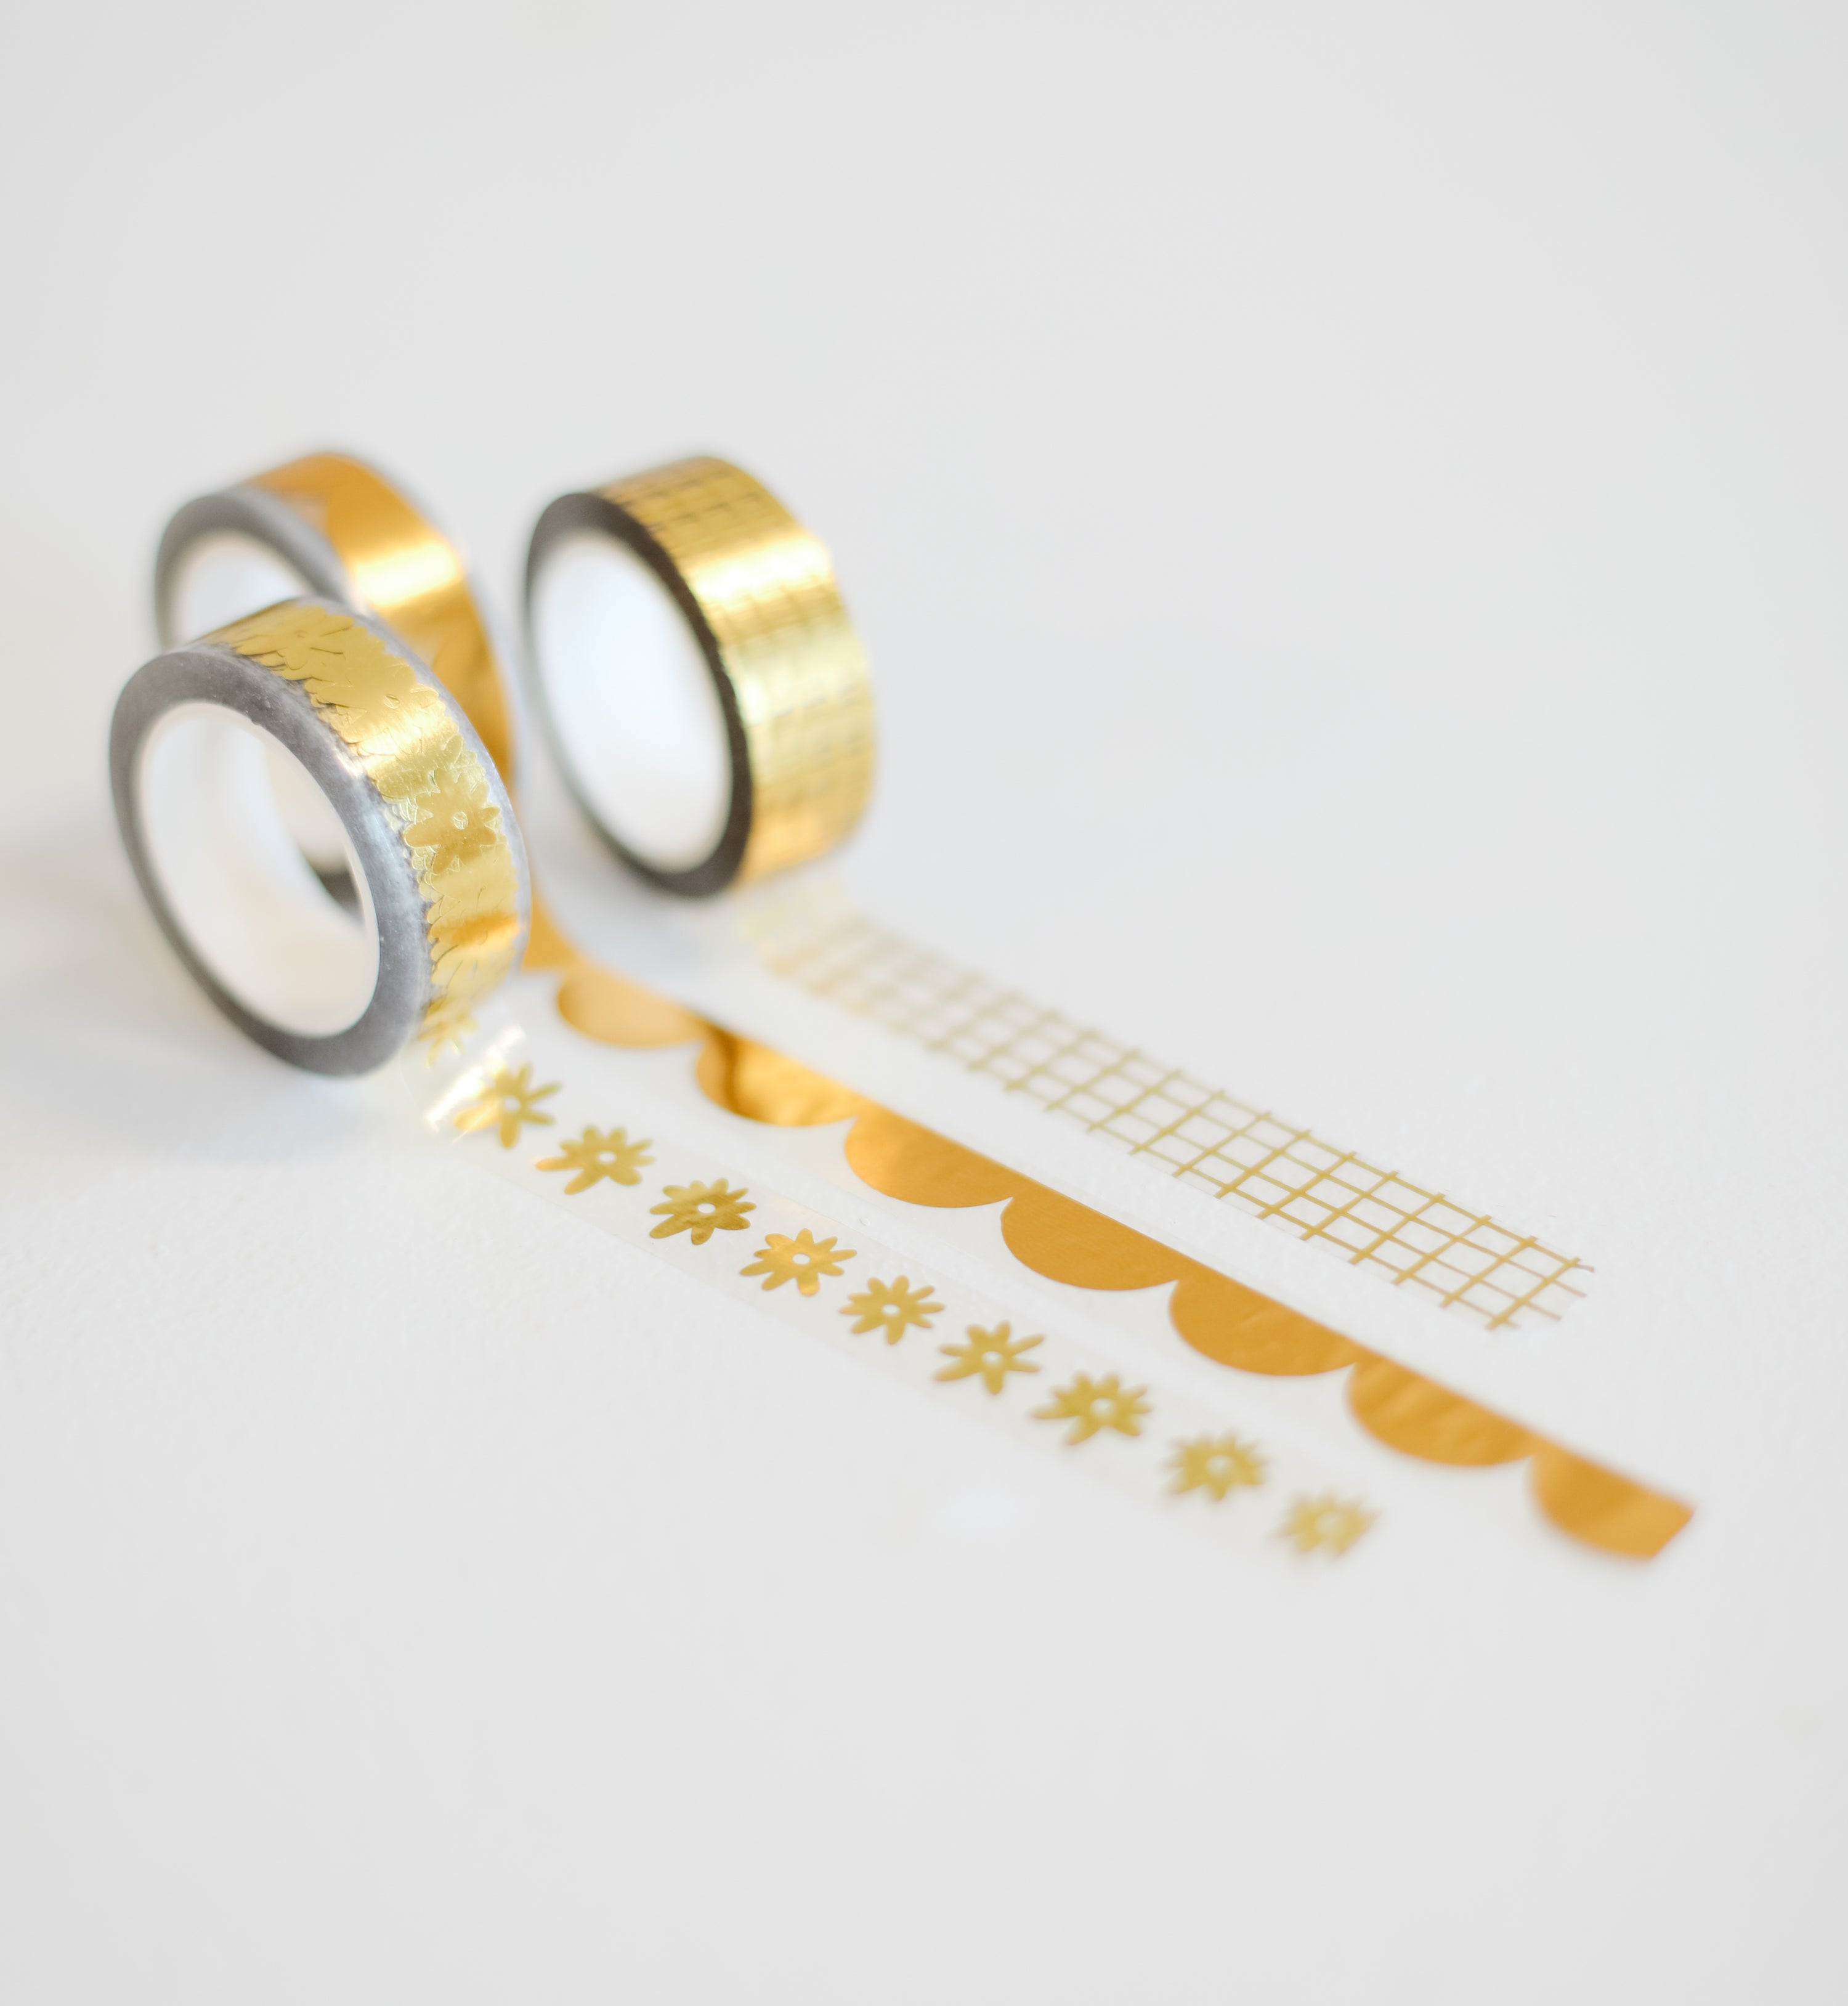 The HeyMaca Gold Washi Tape